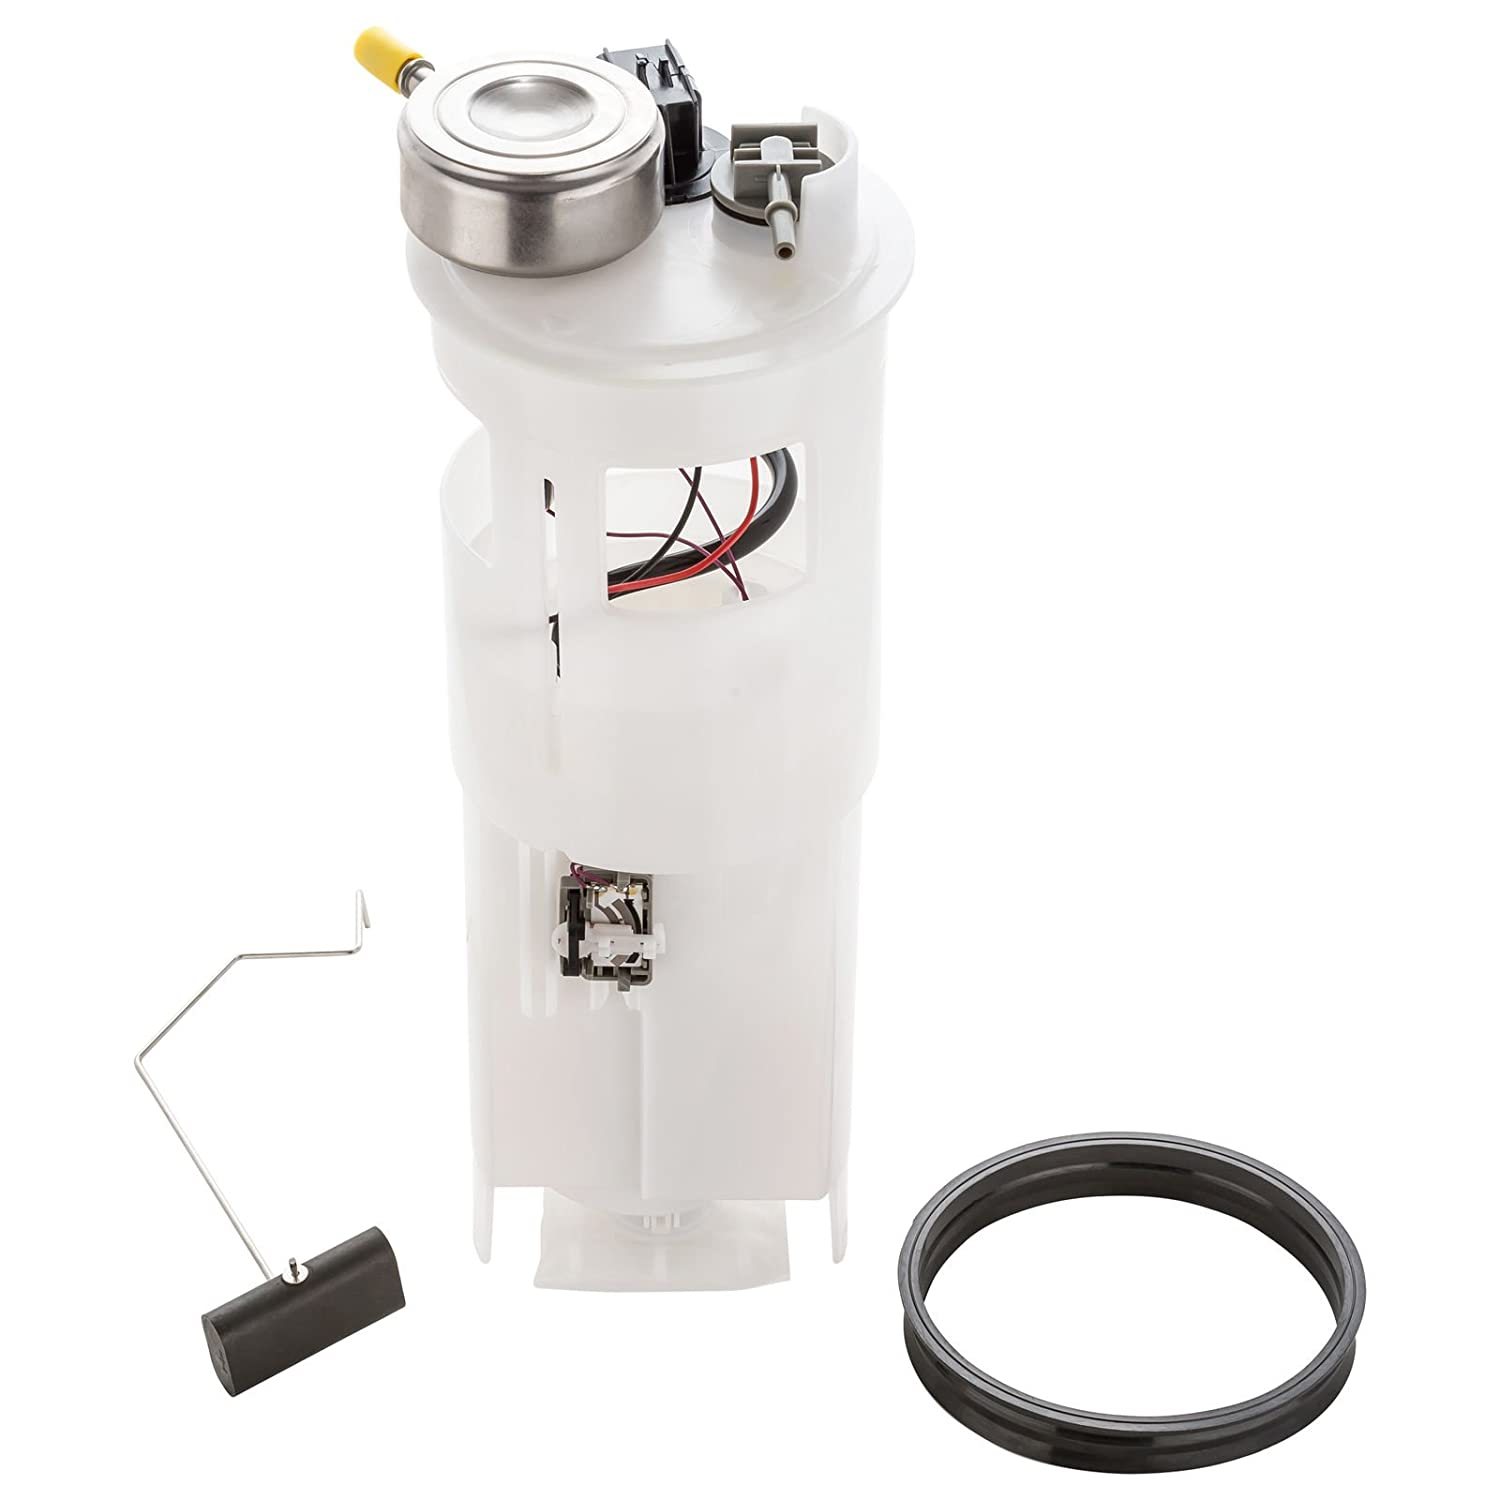 Fuel Pump Assembly For 98 02 Dodge Ram 1500 2500 3500 Club Car Diagram Fits E7138m 4897666aa Automotive